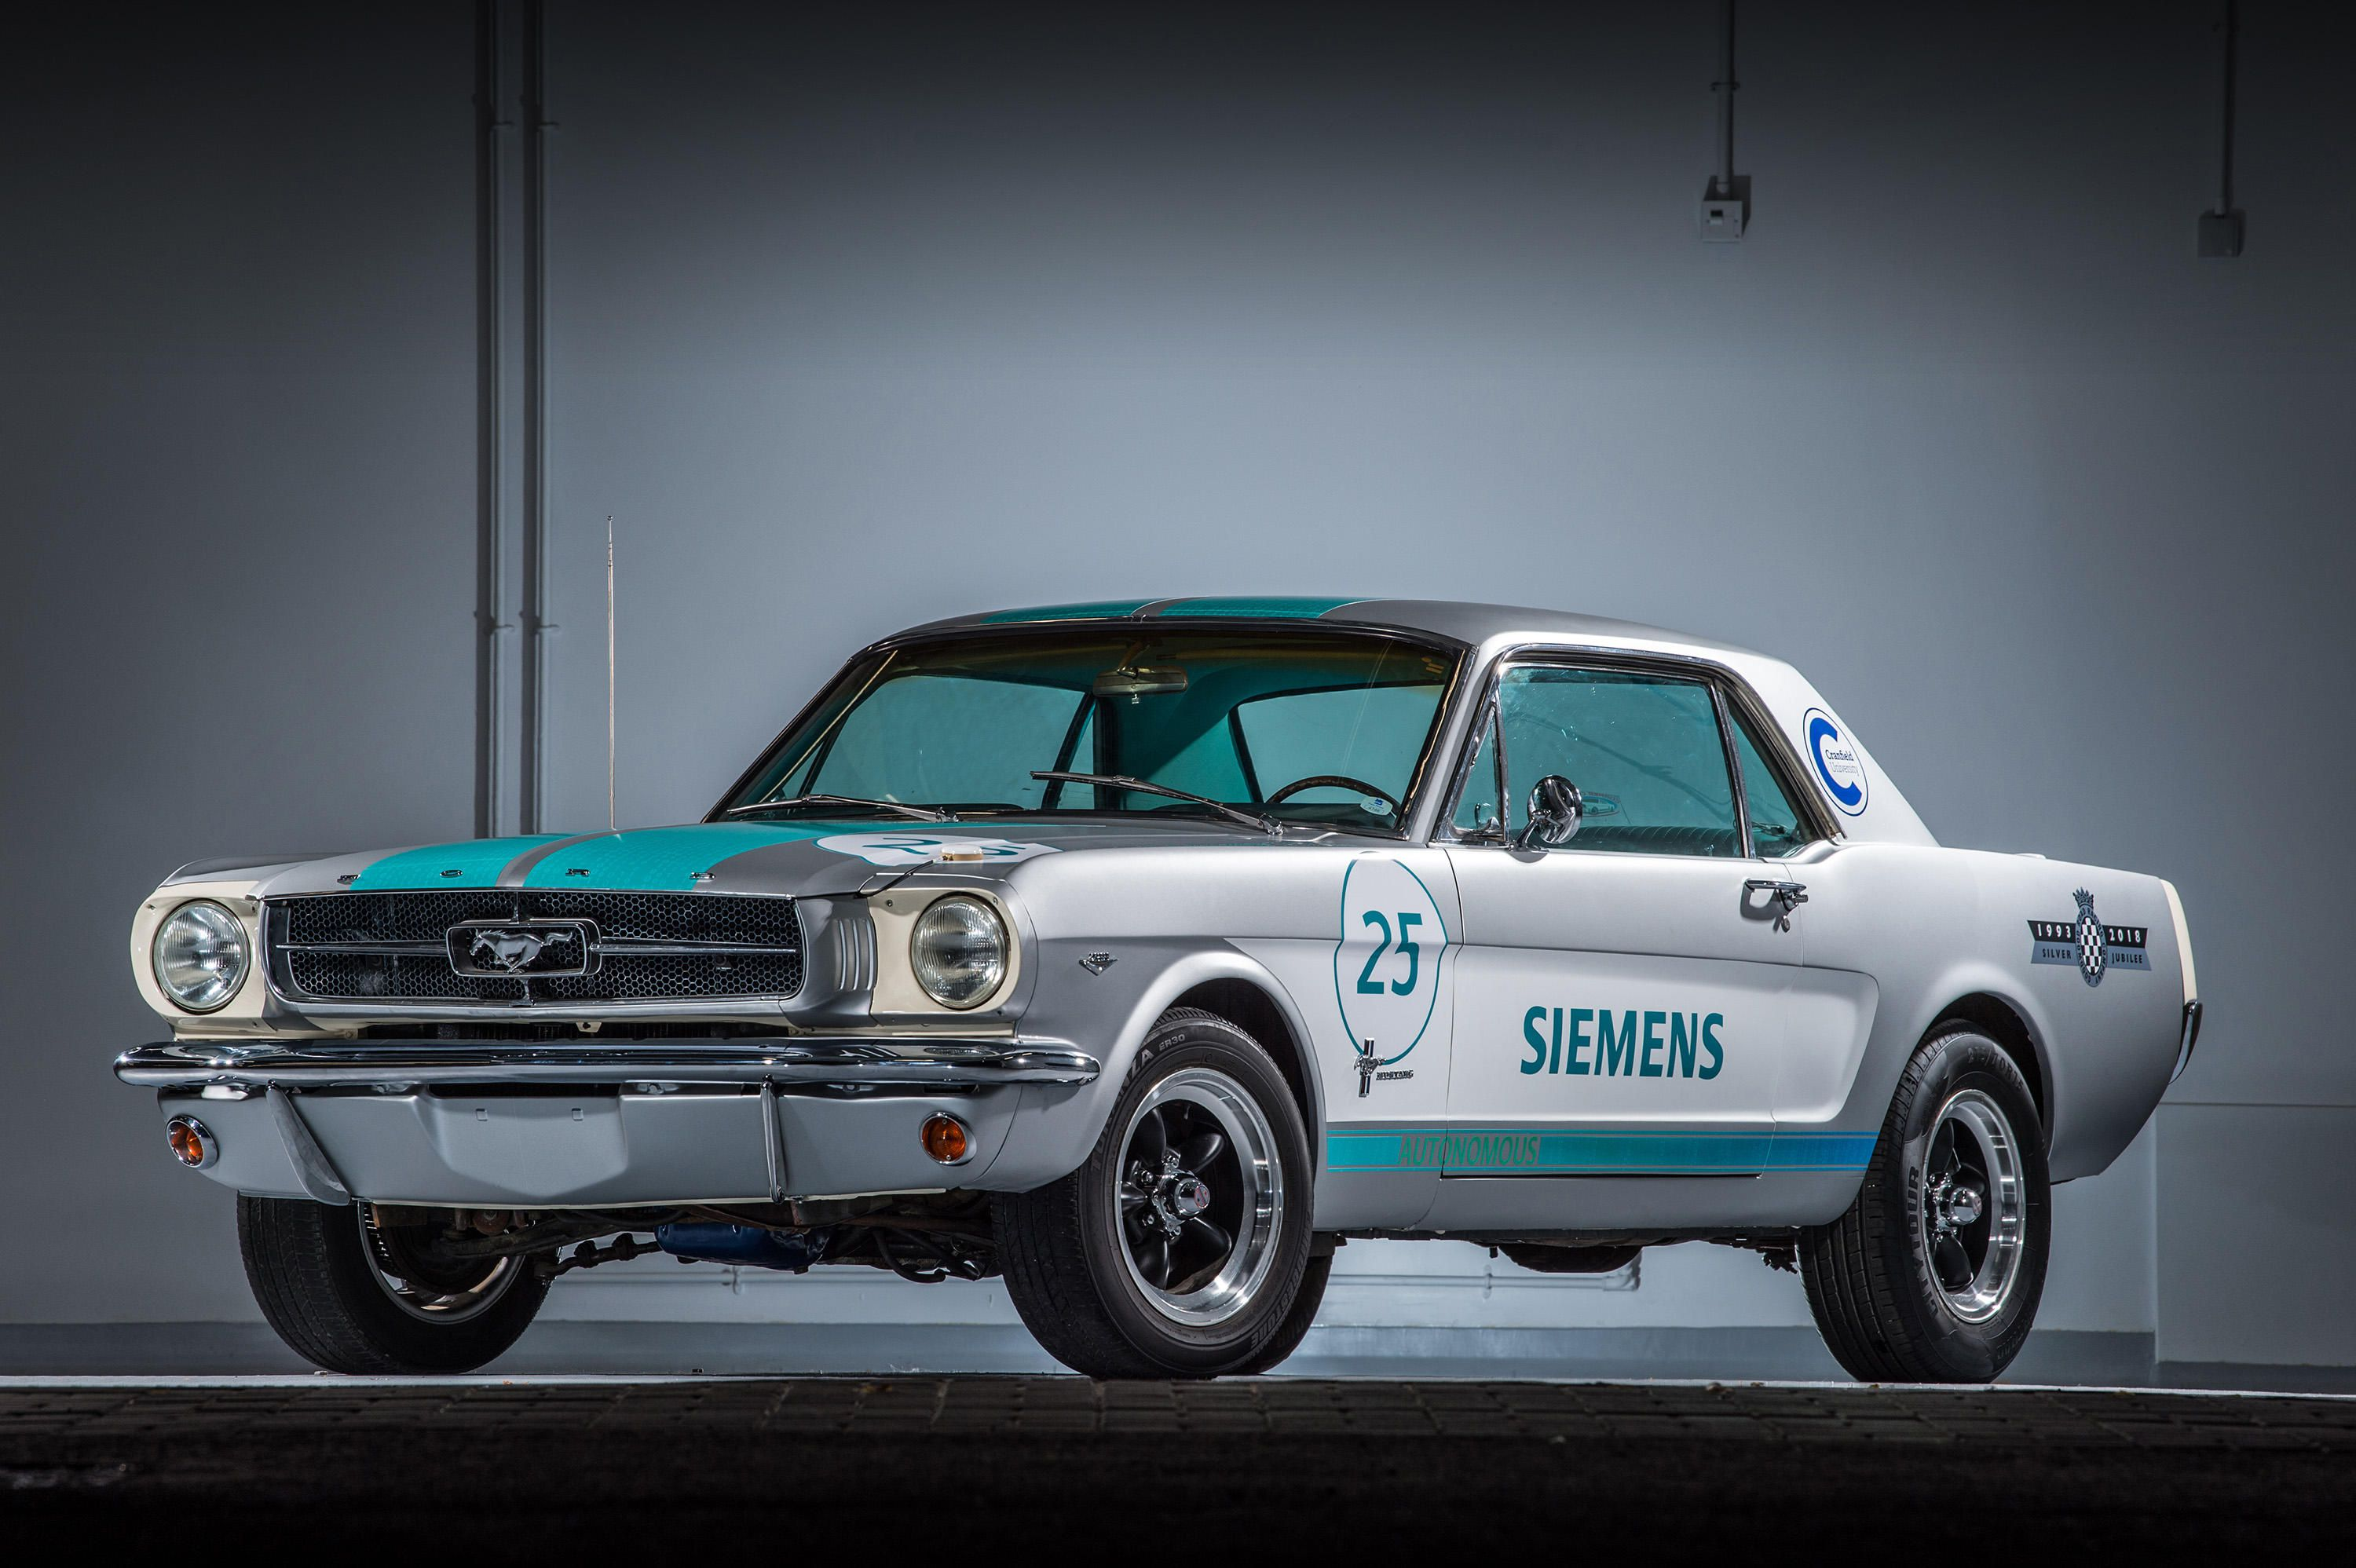 This self-driving Ford Mustang will attempt the hill climb at the Goodwood Festival of Speed. | Siemens photo